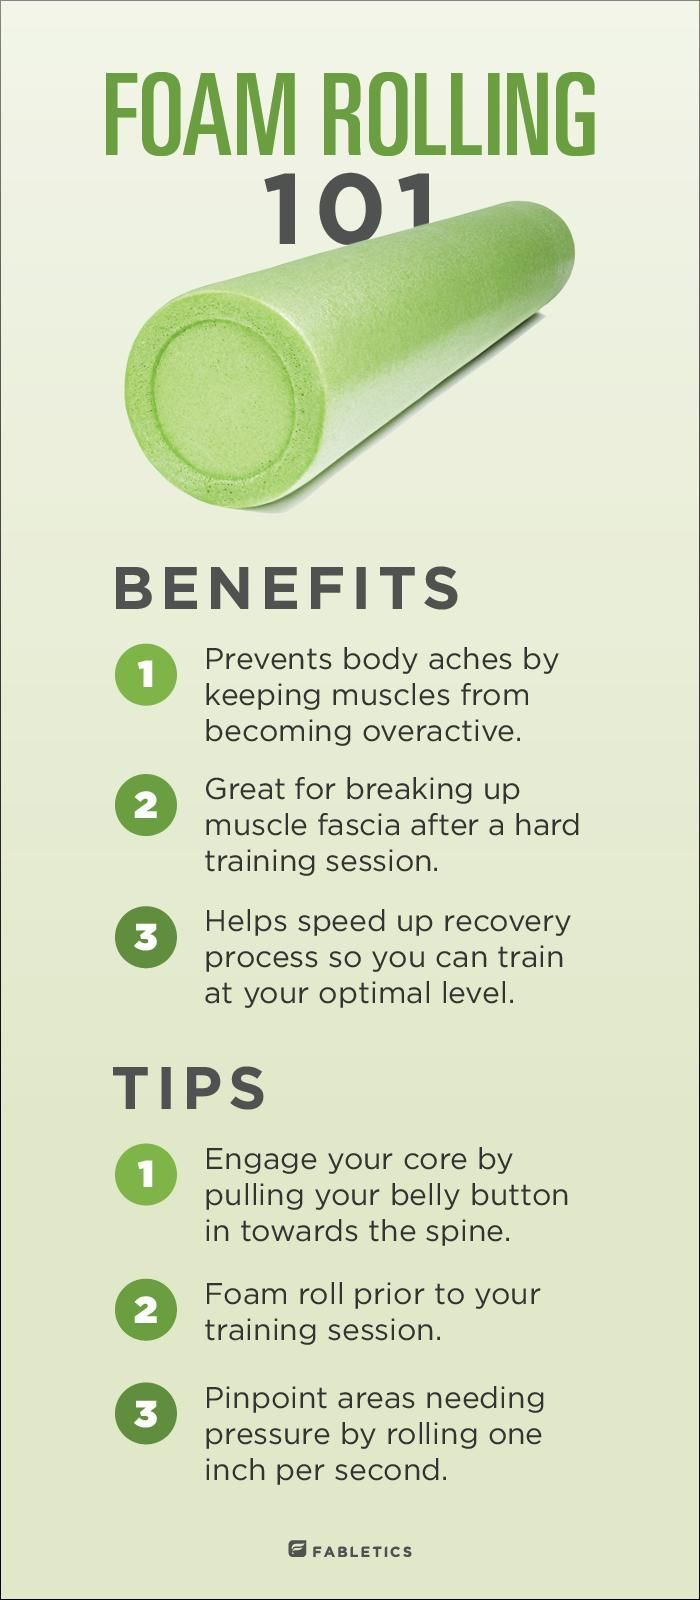 Here's the benefits and some great tips for foam rolling!